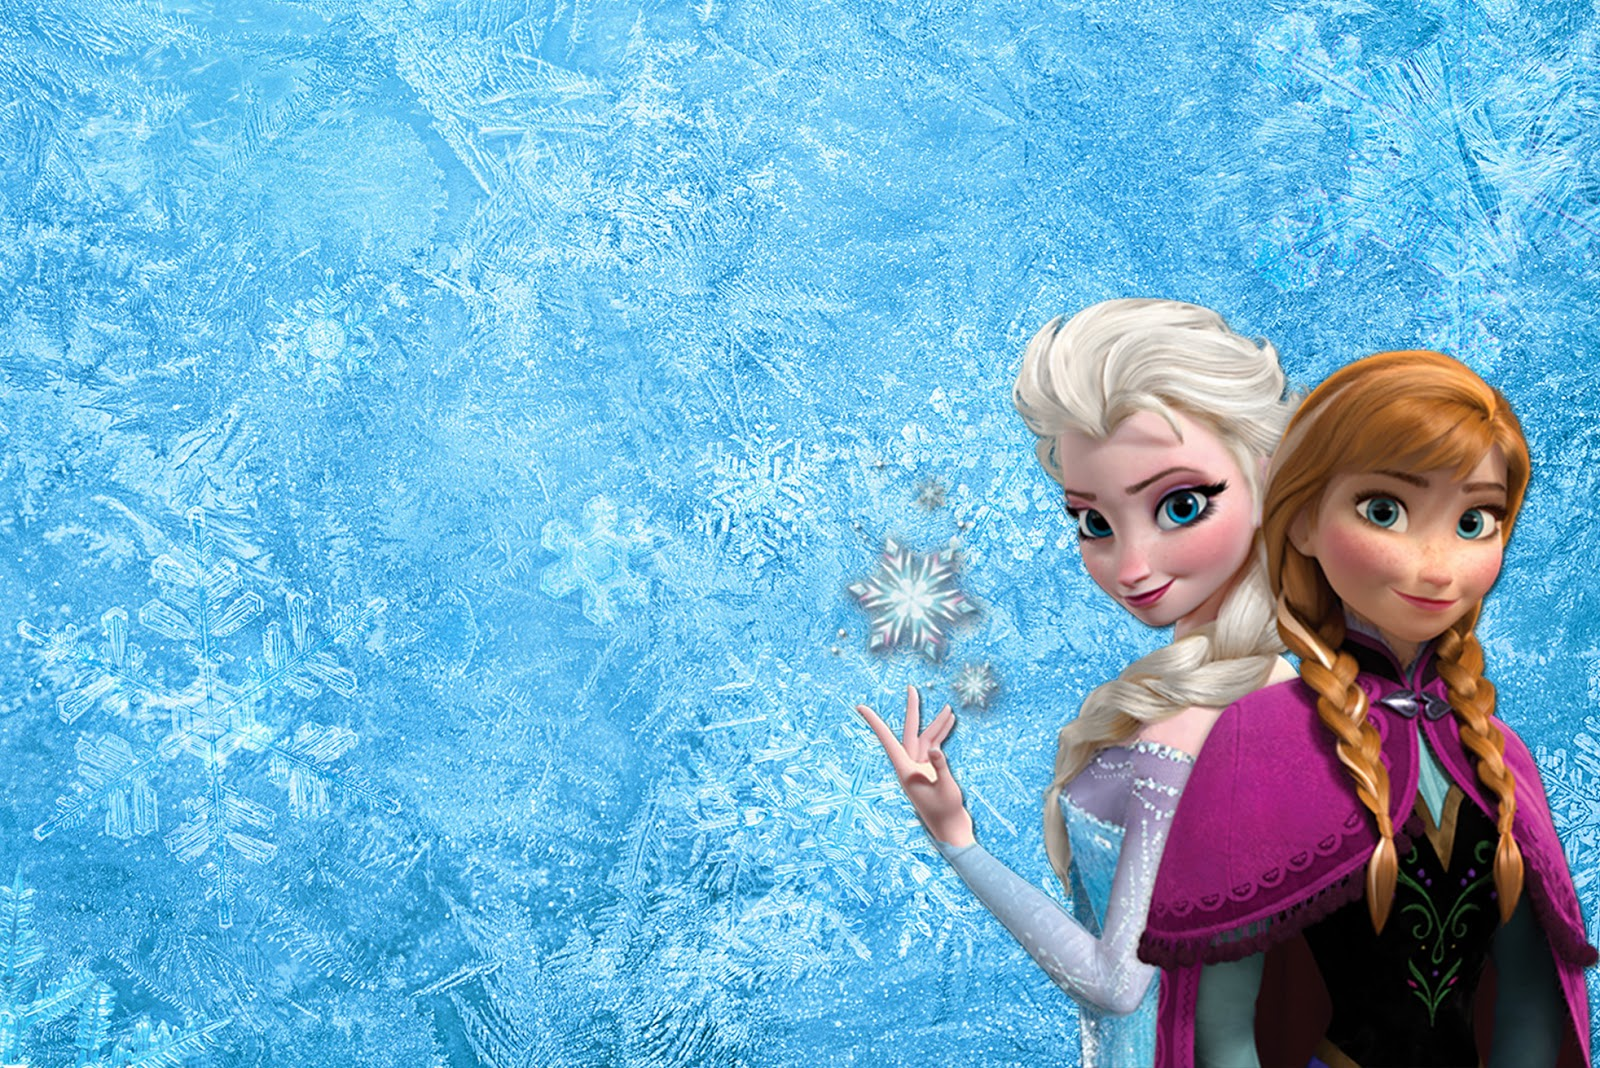 elsa and anna wallpaper and background image | 1600x1068 | id:516775